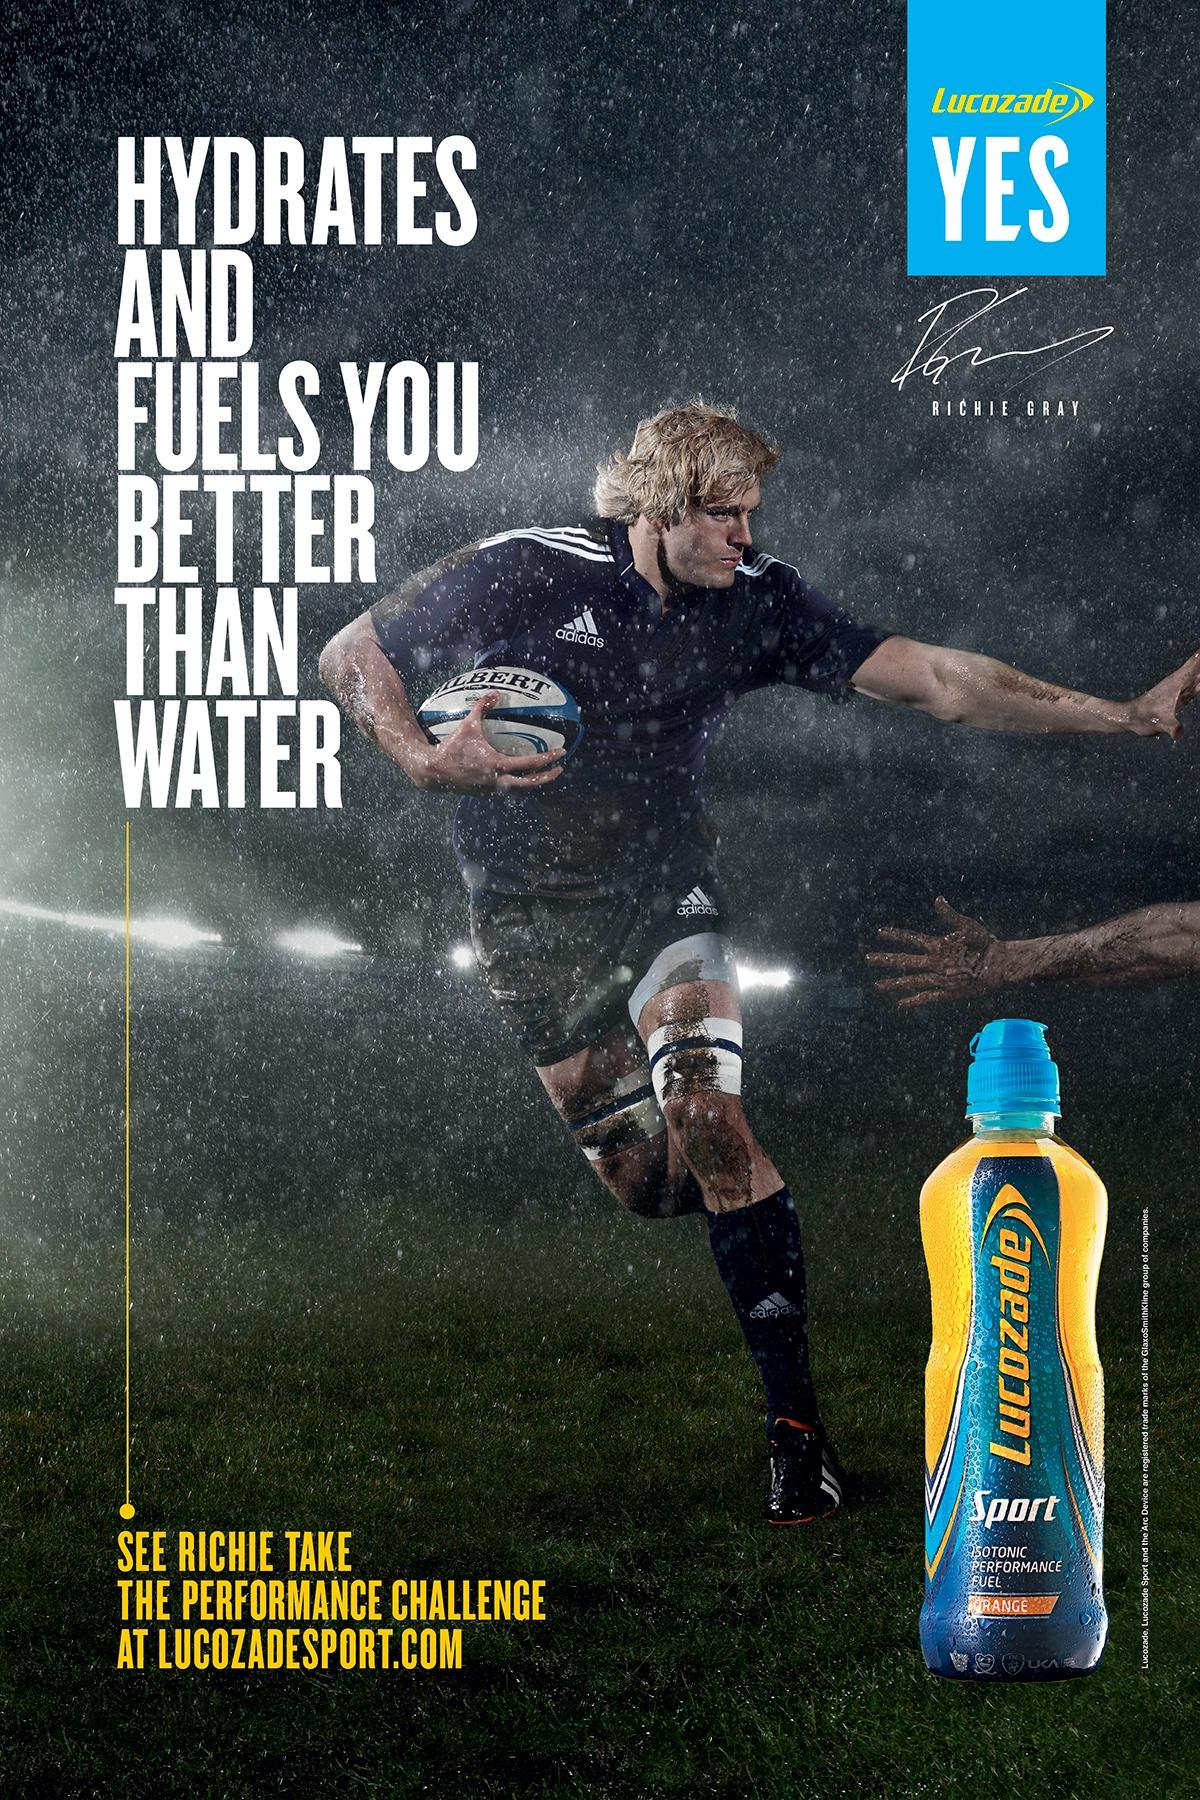 Lucozade Print Ad -  Hydrates and fuels you better than water, 3